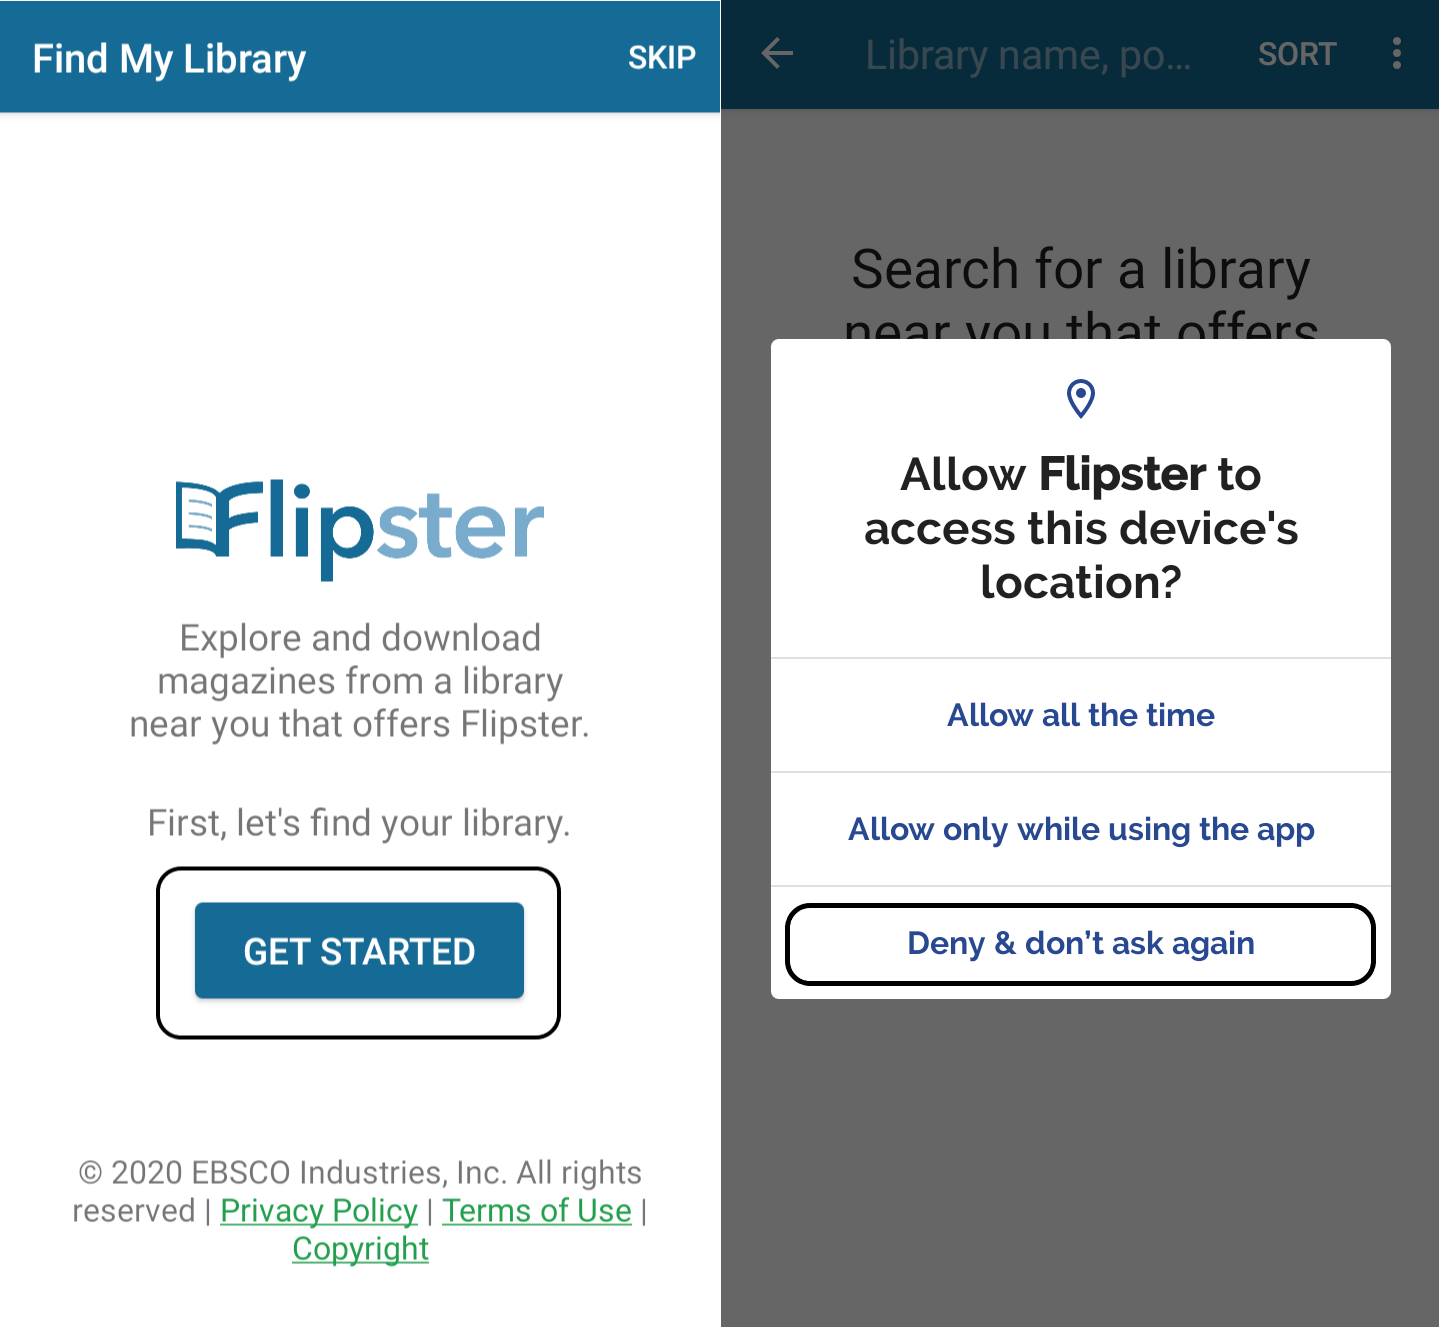 Flipster's get started and library location search features